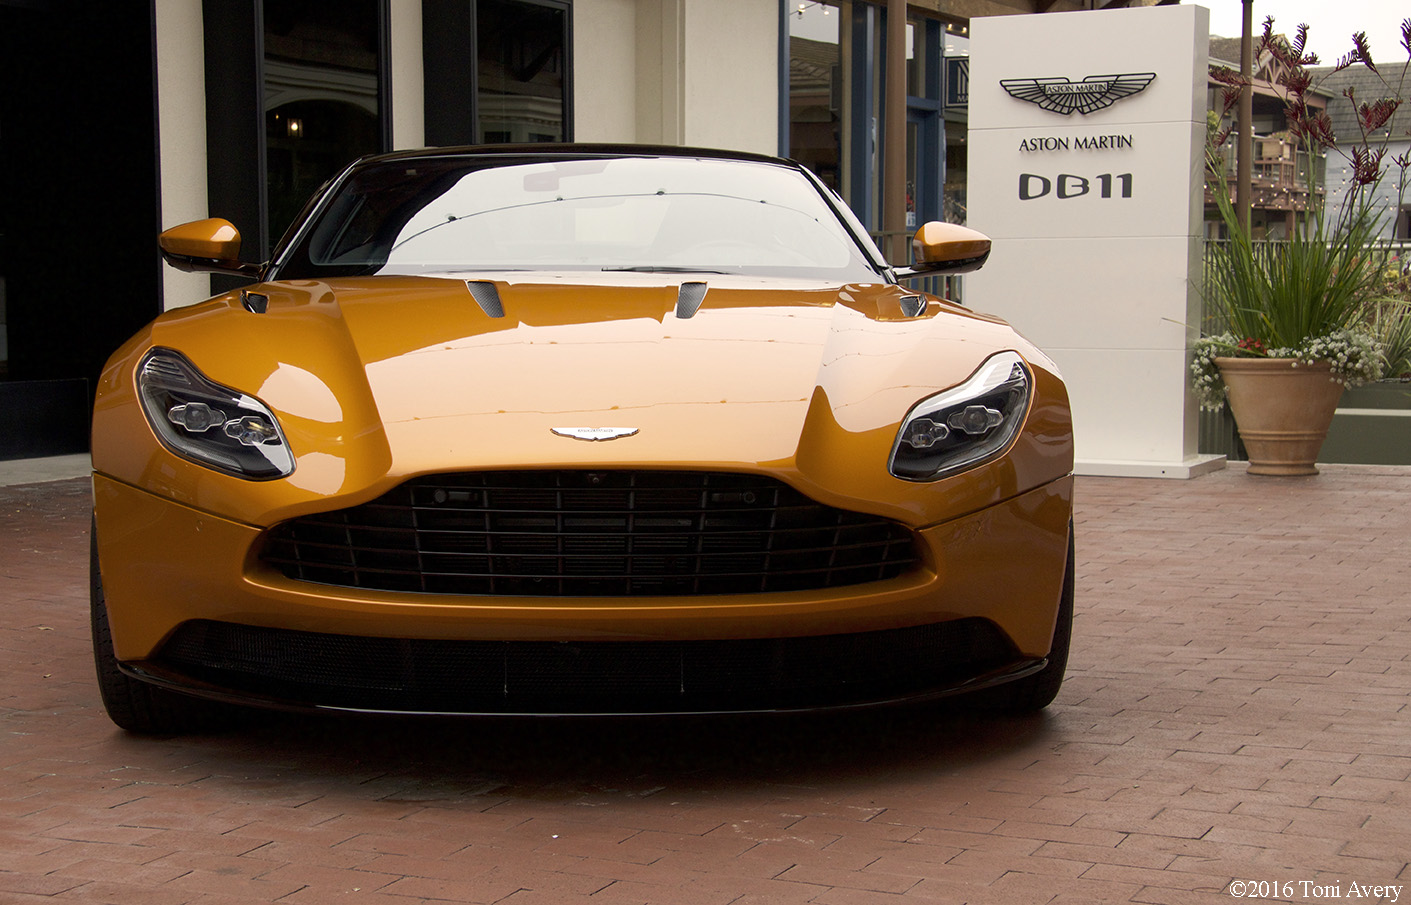 Aston Martin on Ocean 2016, Monterey Car Week